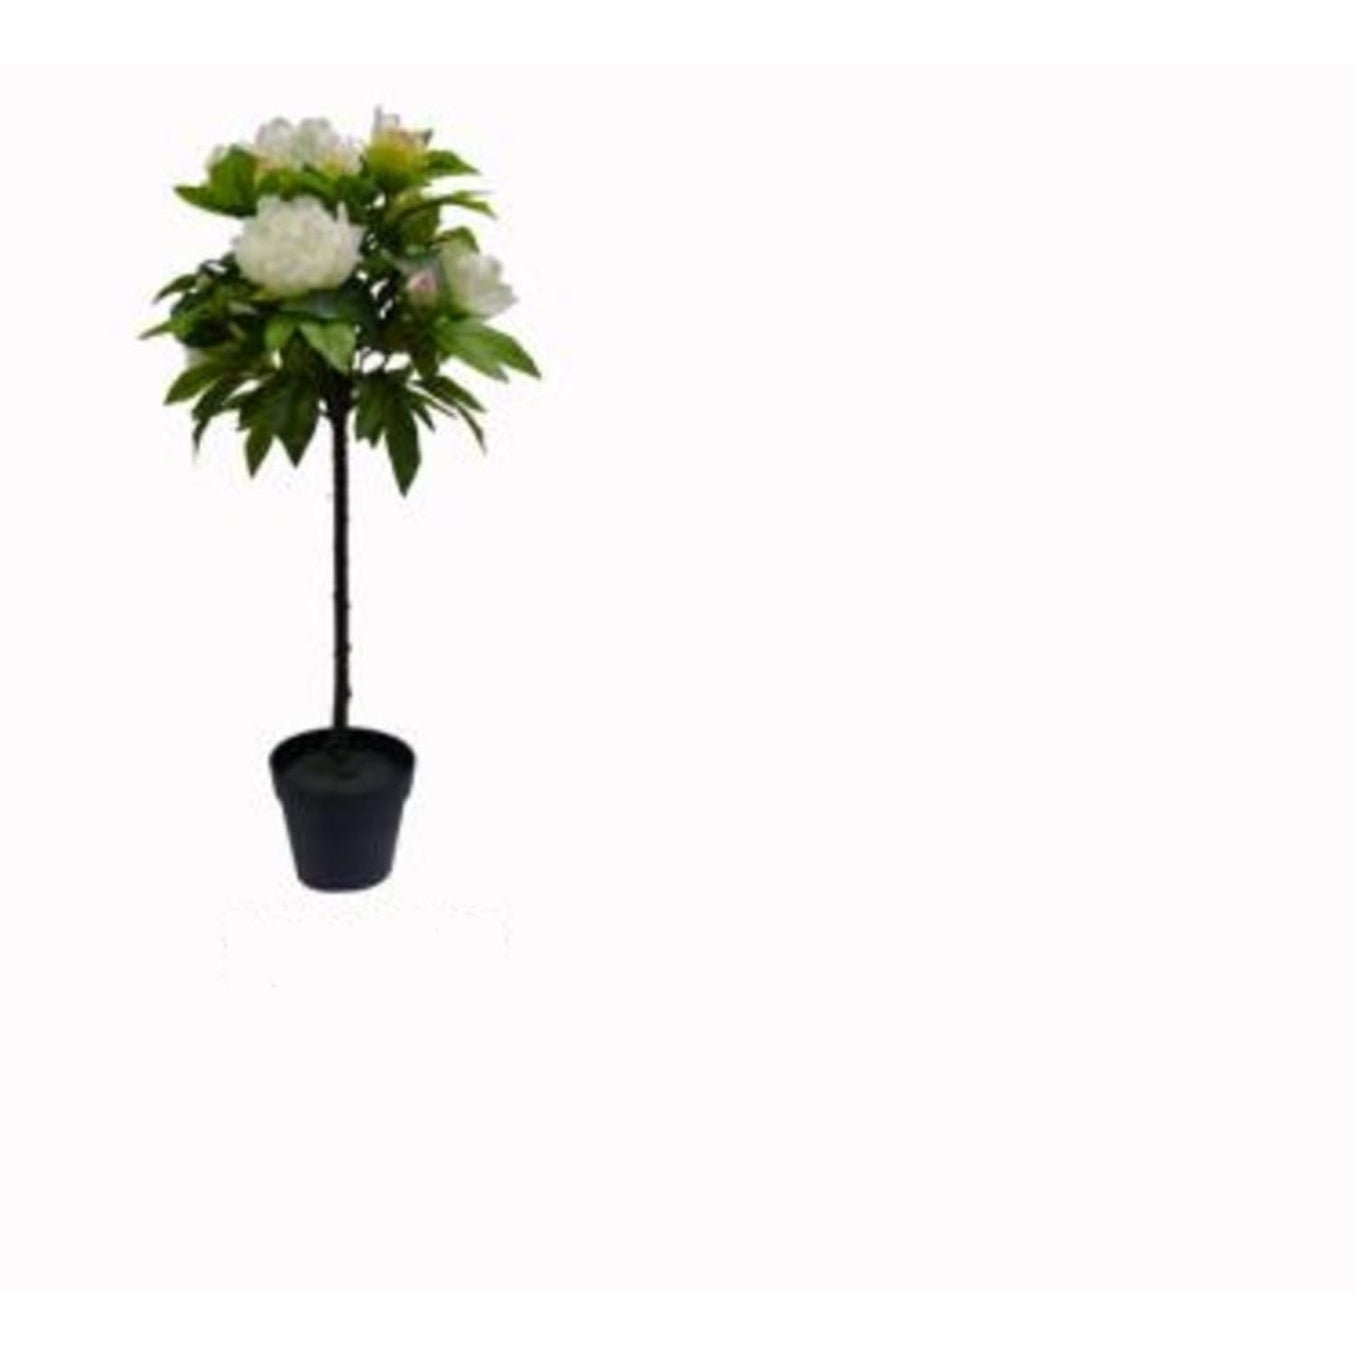 Shop 3025 Potted Ball Shaped Topiary Tree With Large White Flowers